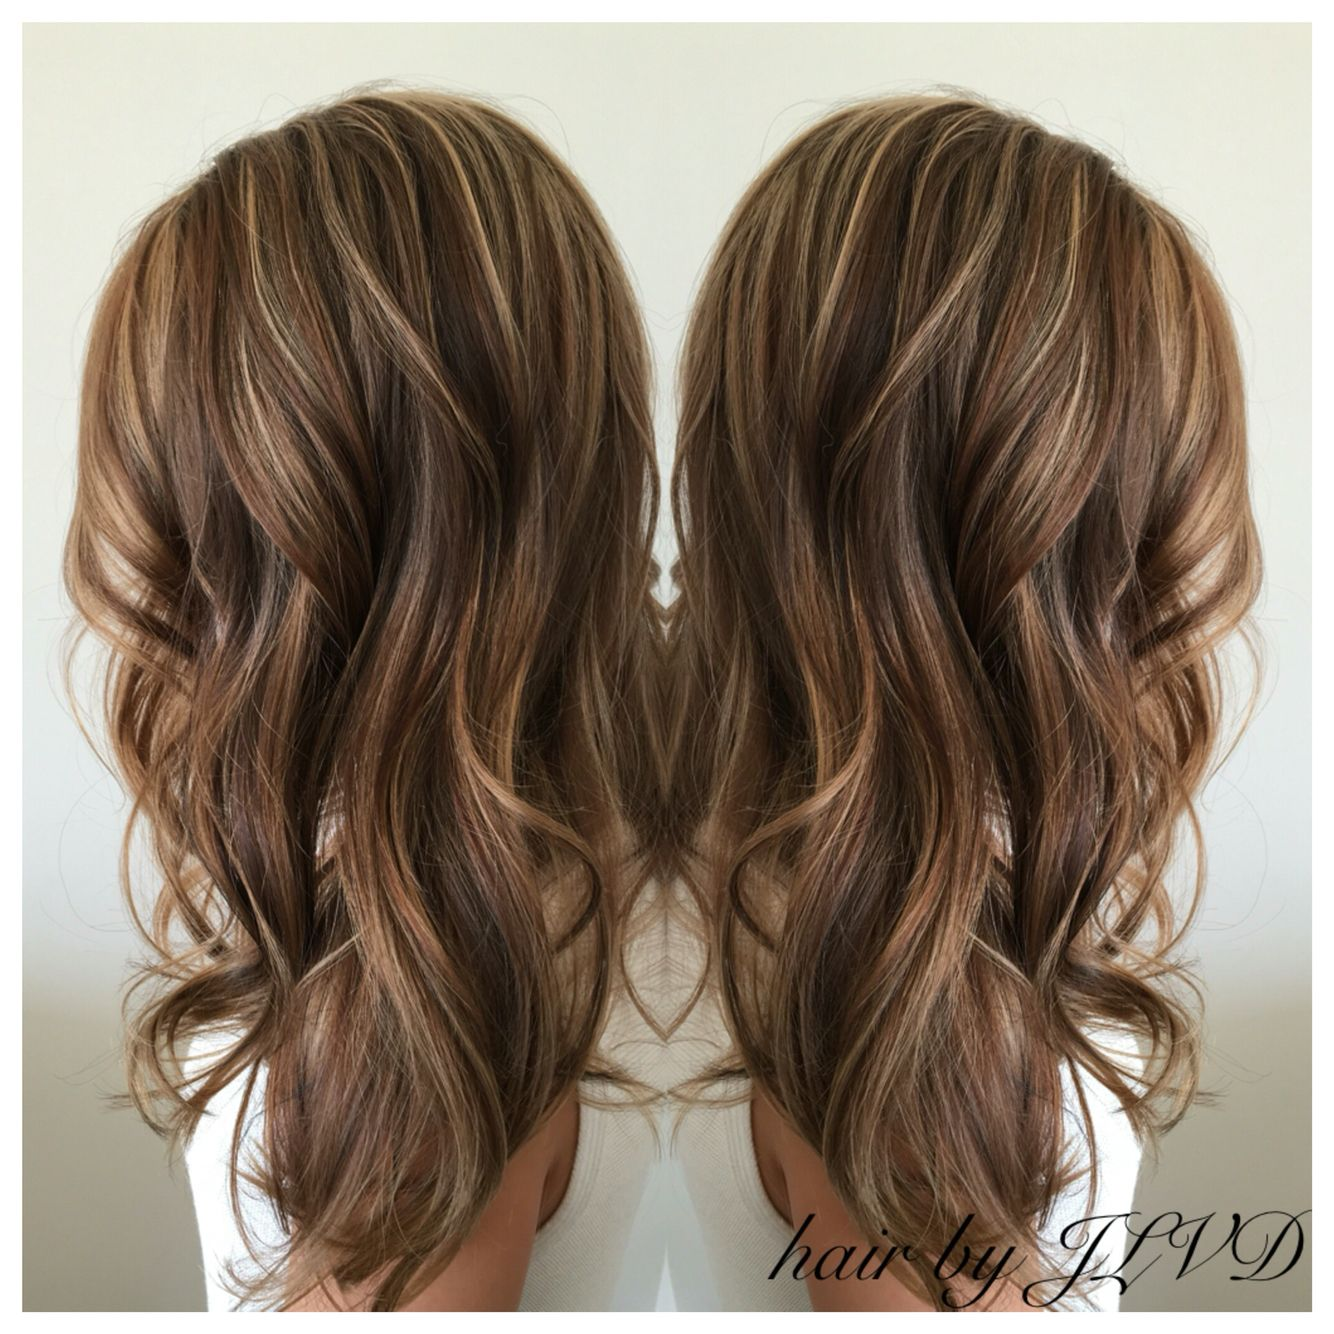 Highlight Lowlight Ideas Brunettes : Beautiful fall ready hair, brunette highlights and lowlights, loose curls Hair by JLVD ...